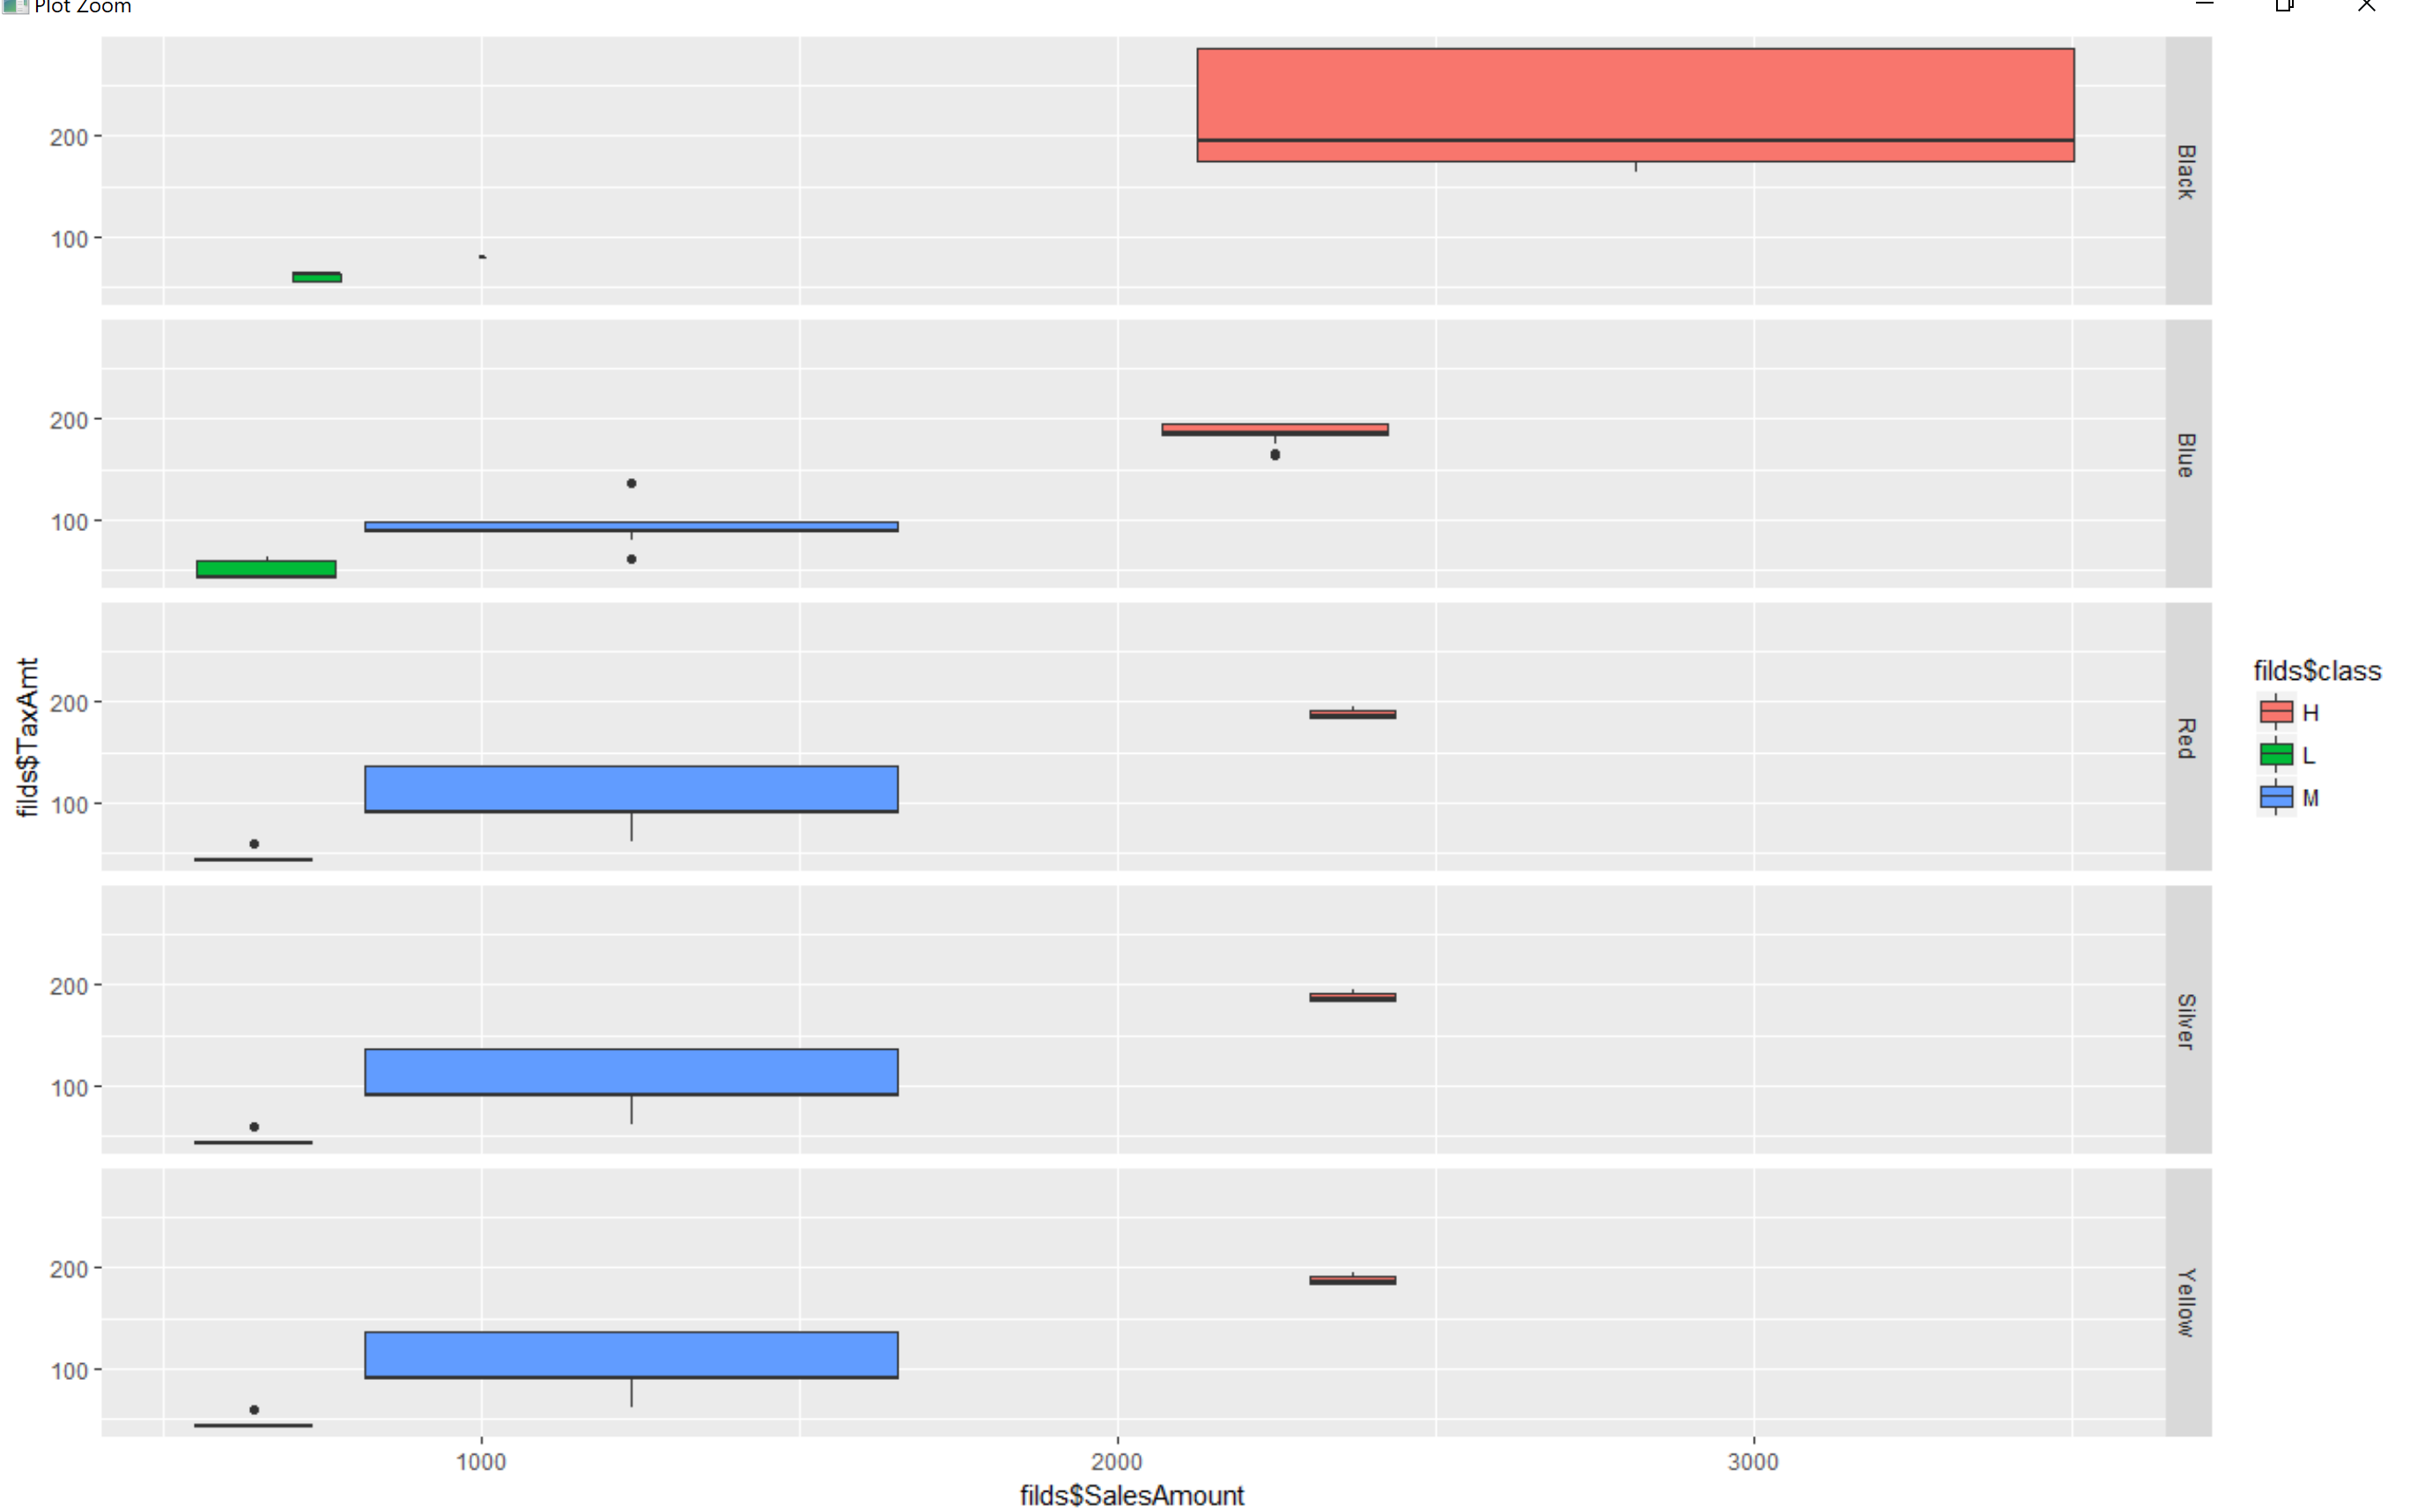 R Chart into SSRS (get data from SQL and create ggplot chart in R